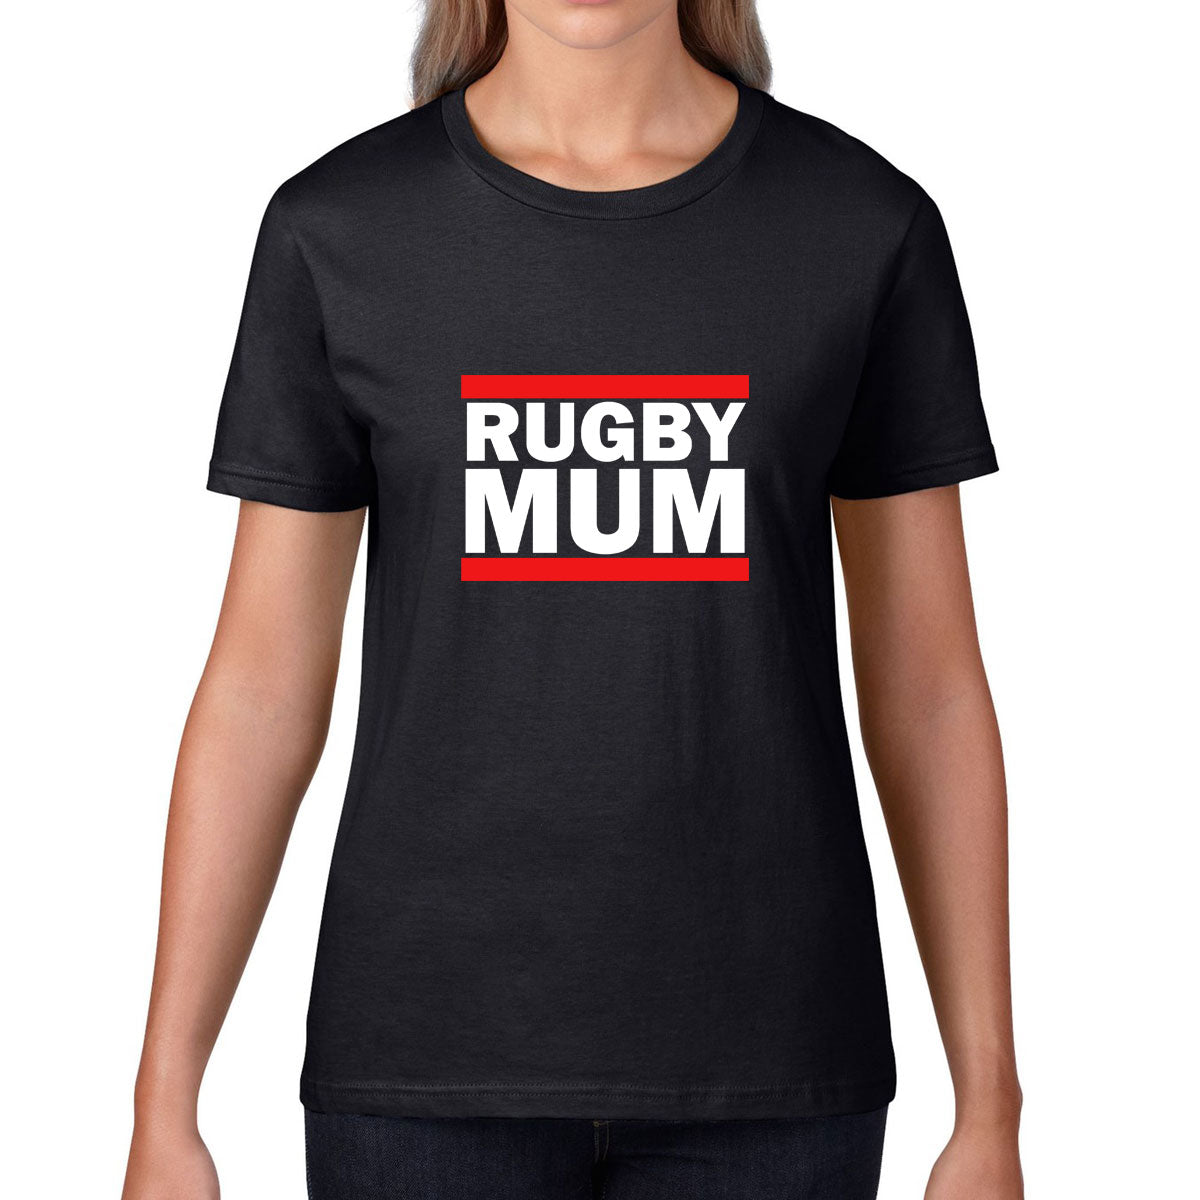 Women's Rugby Mum Tee - First XV rugbystuff.com